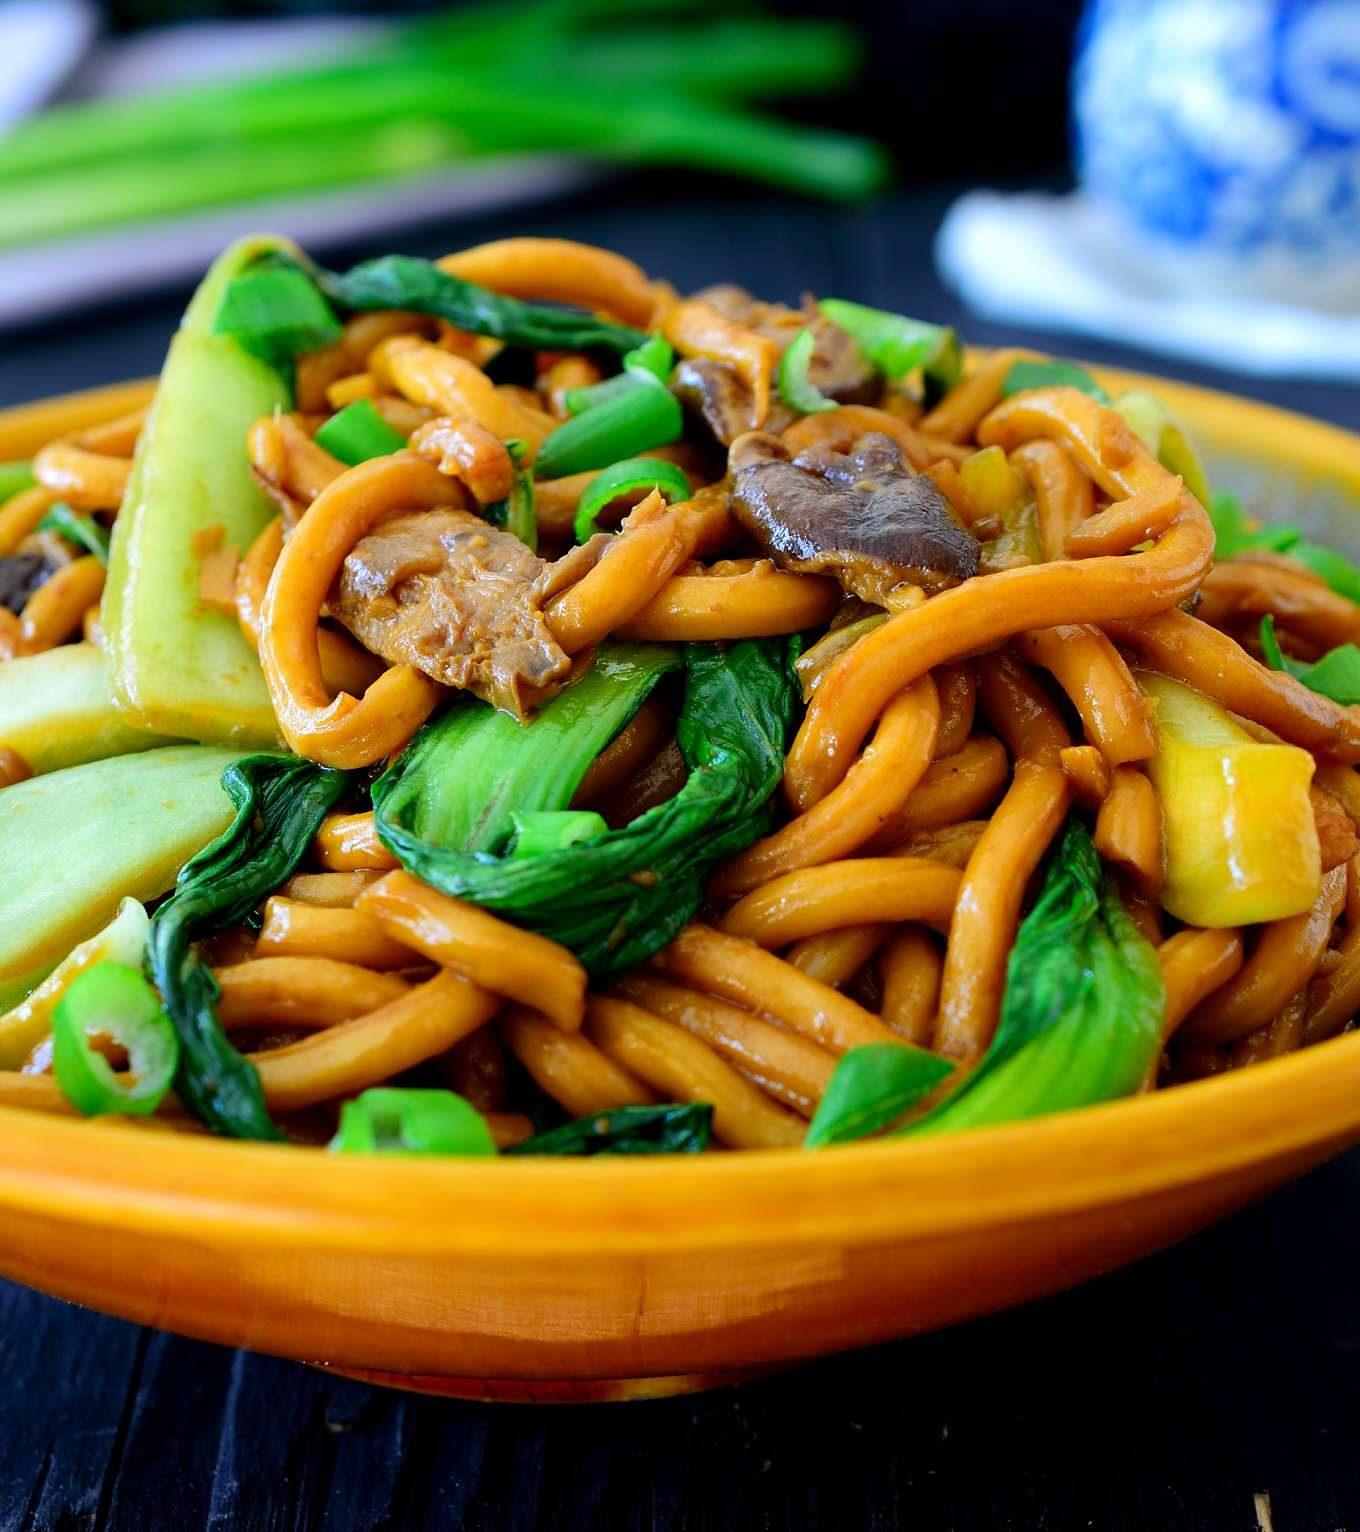 Vegetarian udon noodle recipe with bok choy cilantro and citronella this vegetarian udon noodle recipe with bok choy and shiitake mushrooms is a delicious and filling forumfinder Choice Image